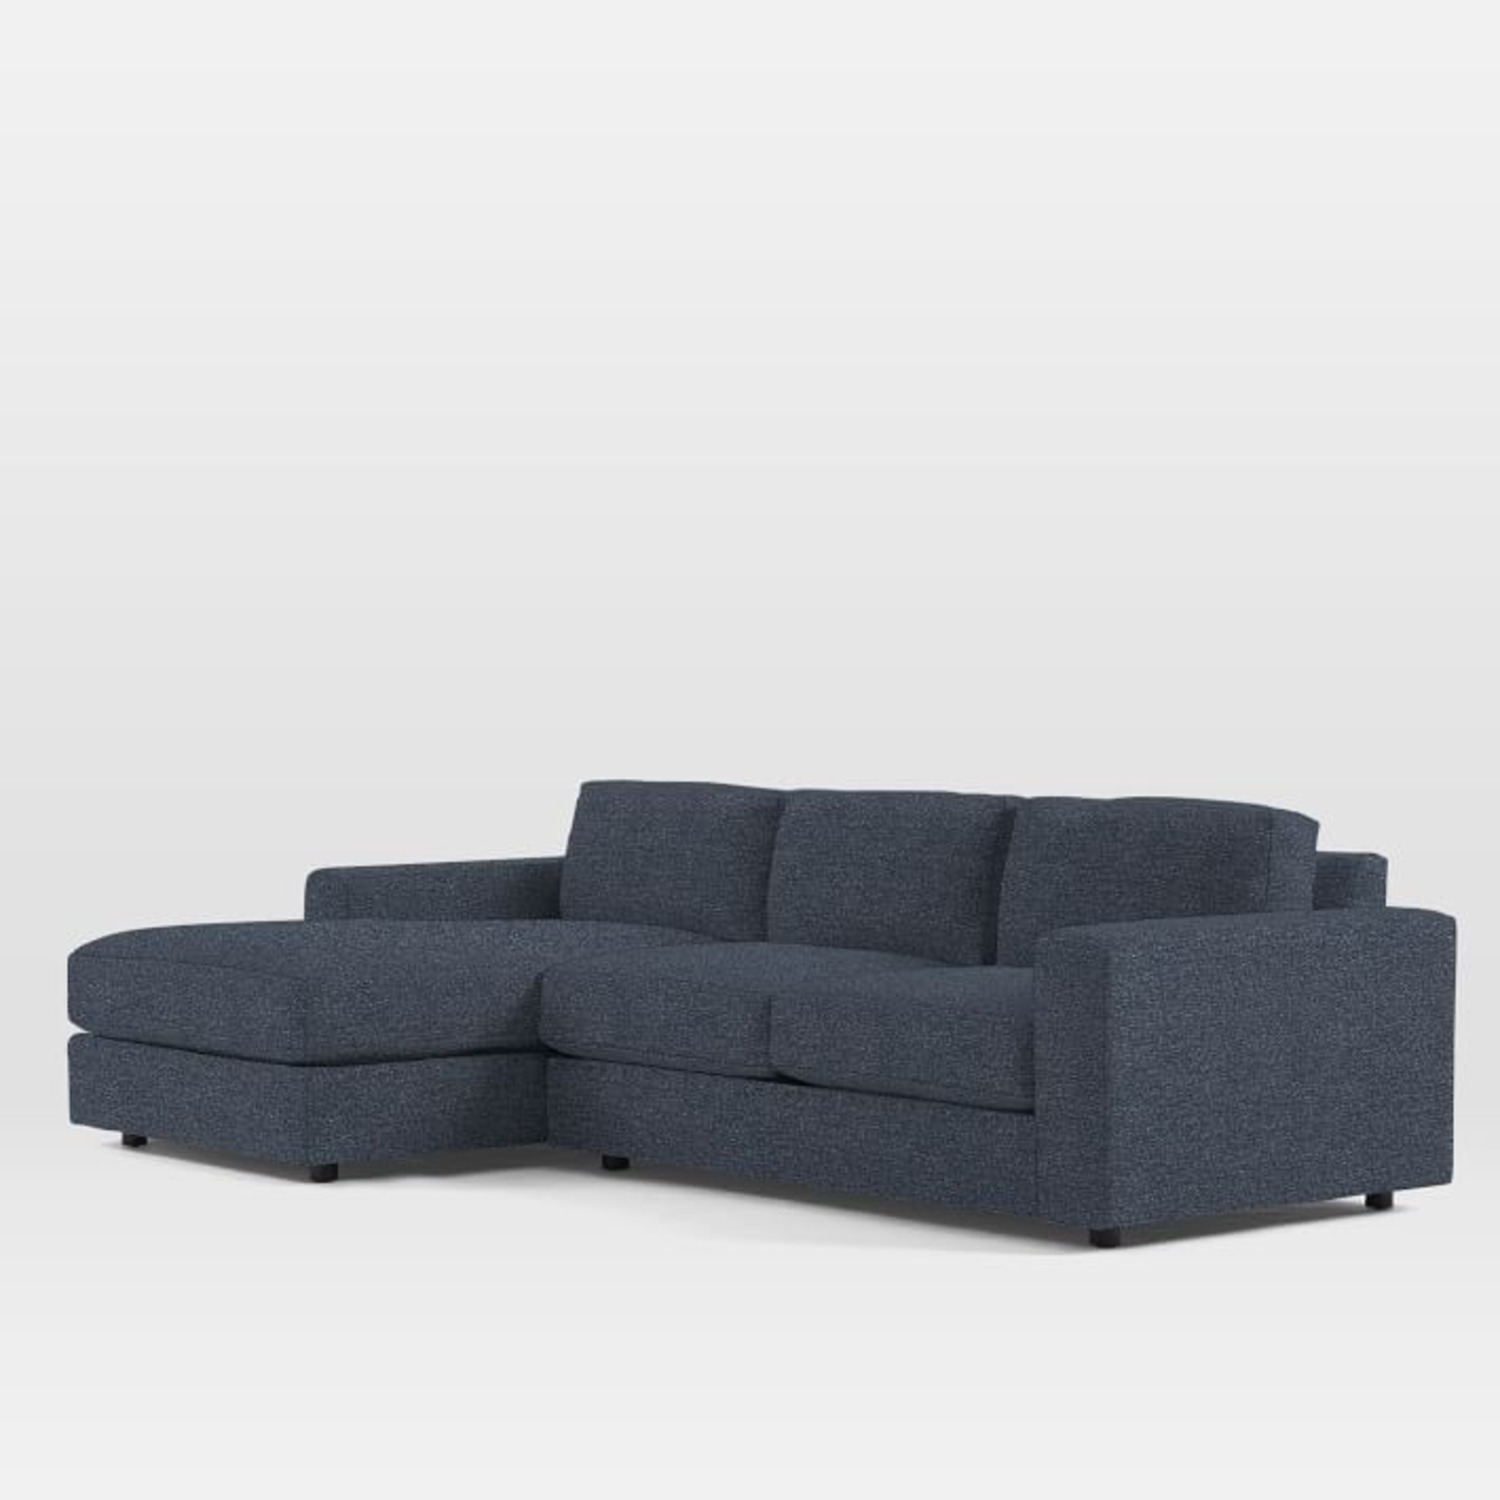 West Elm Urban 2-Piece Chaise Sectional - image-3